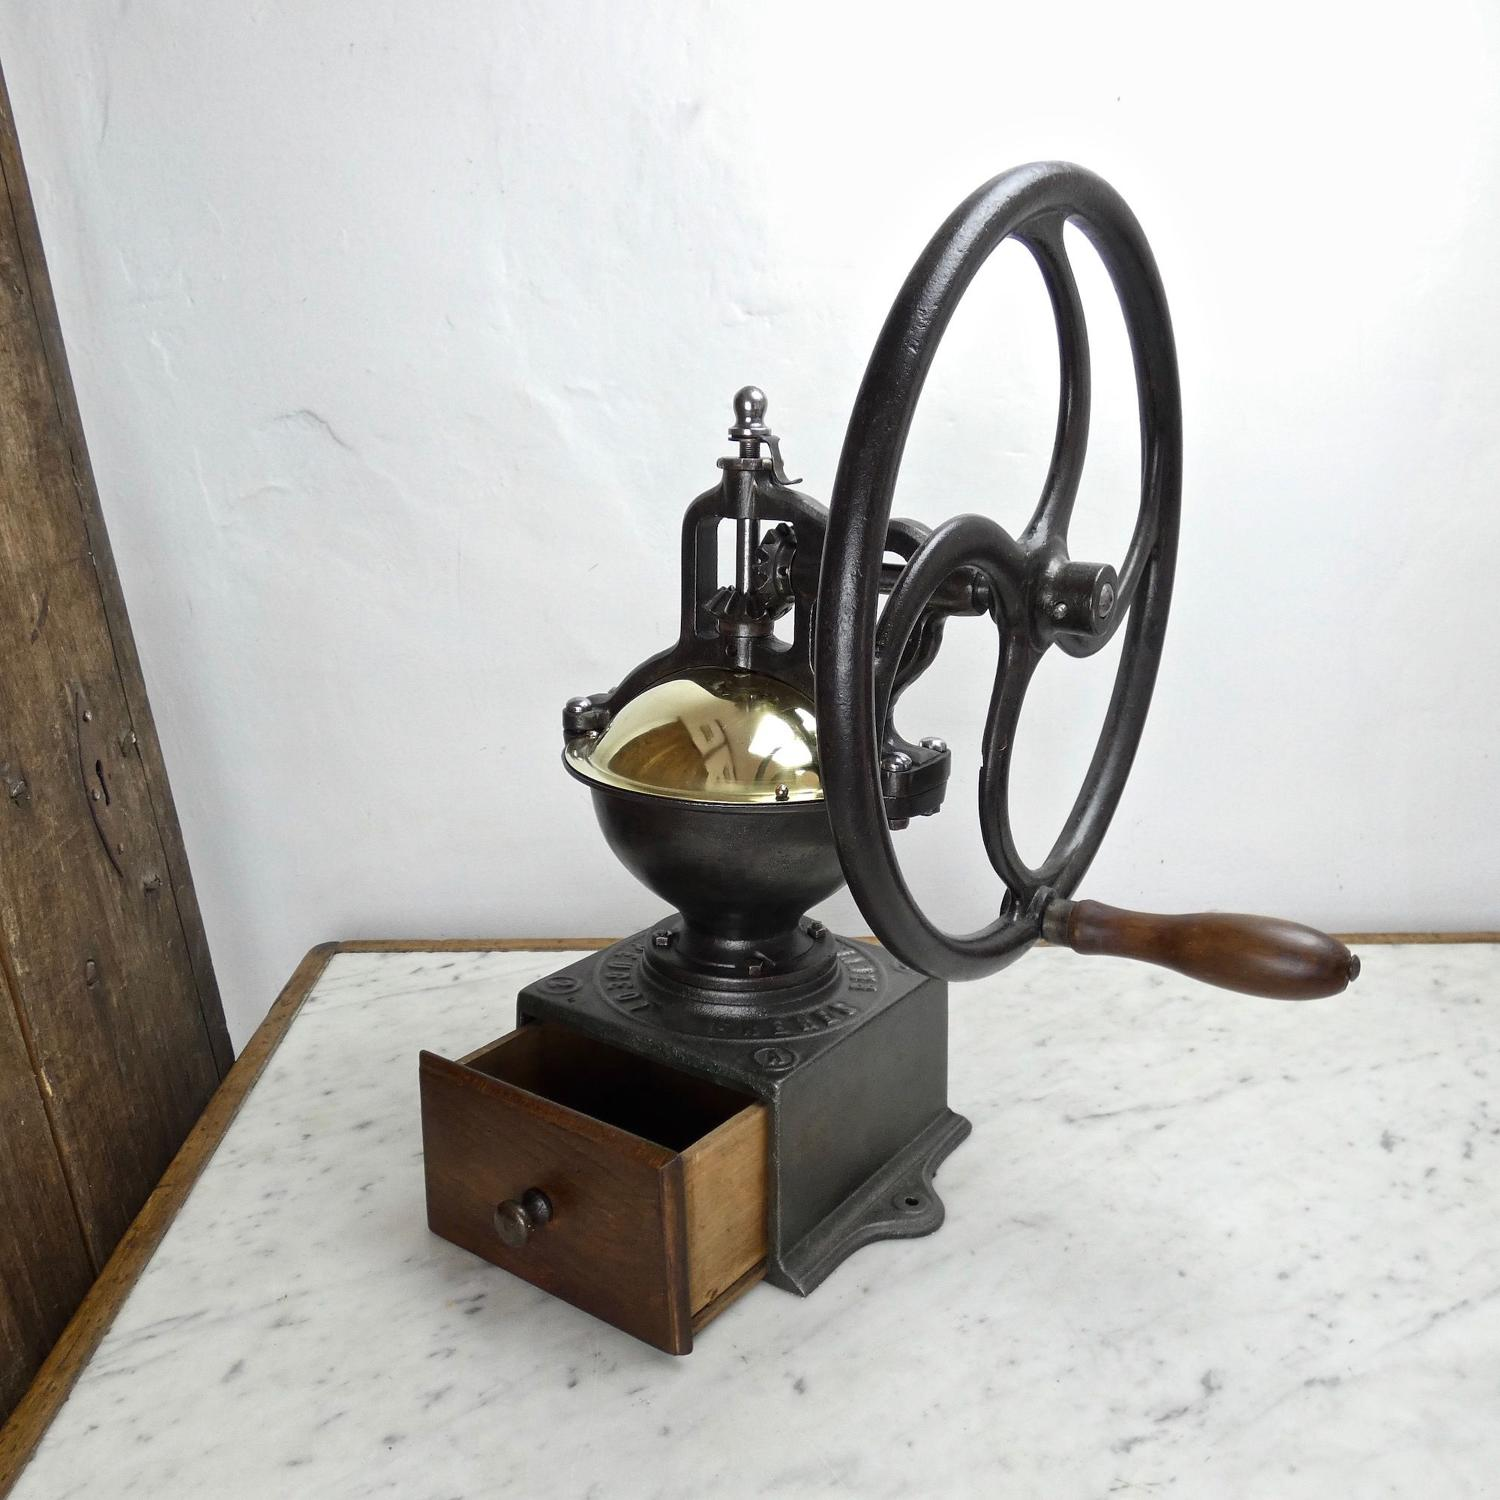 Peugeot coffee mill with wheel.